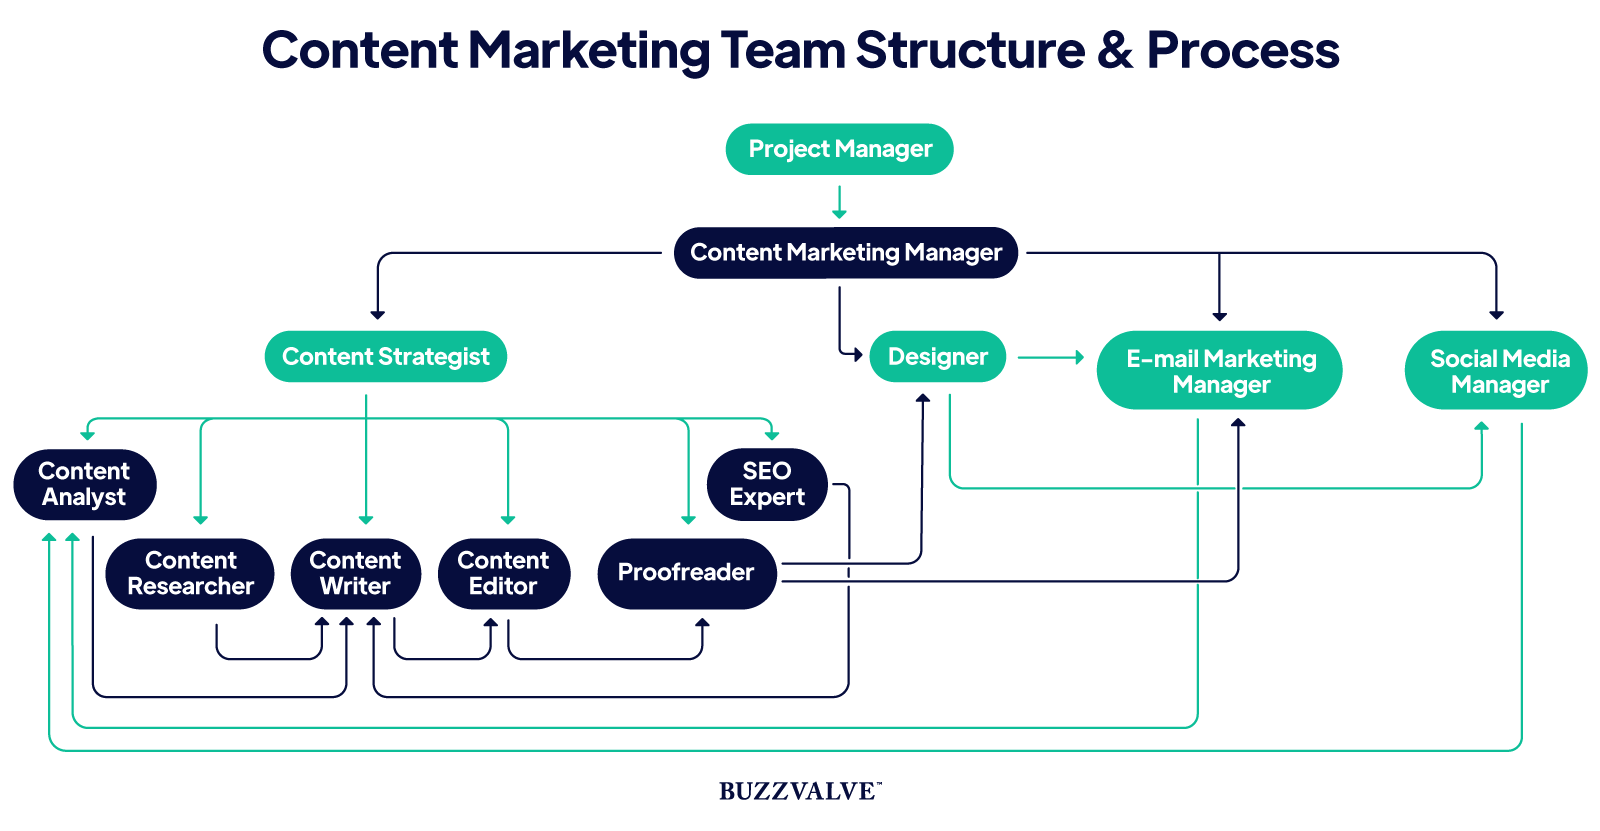 Content marketing team structure and process